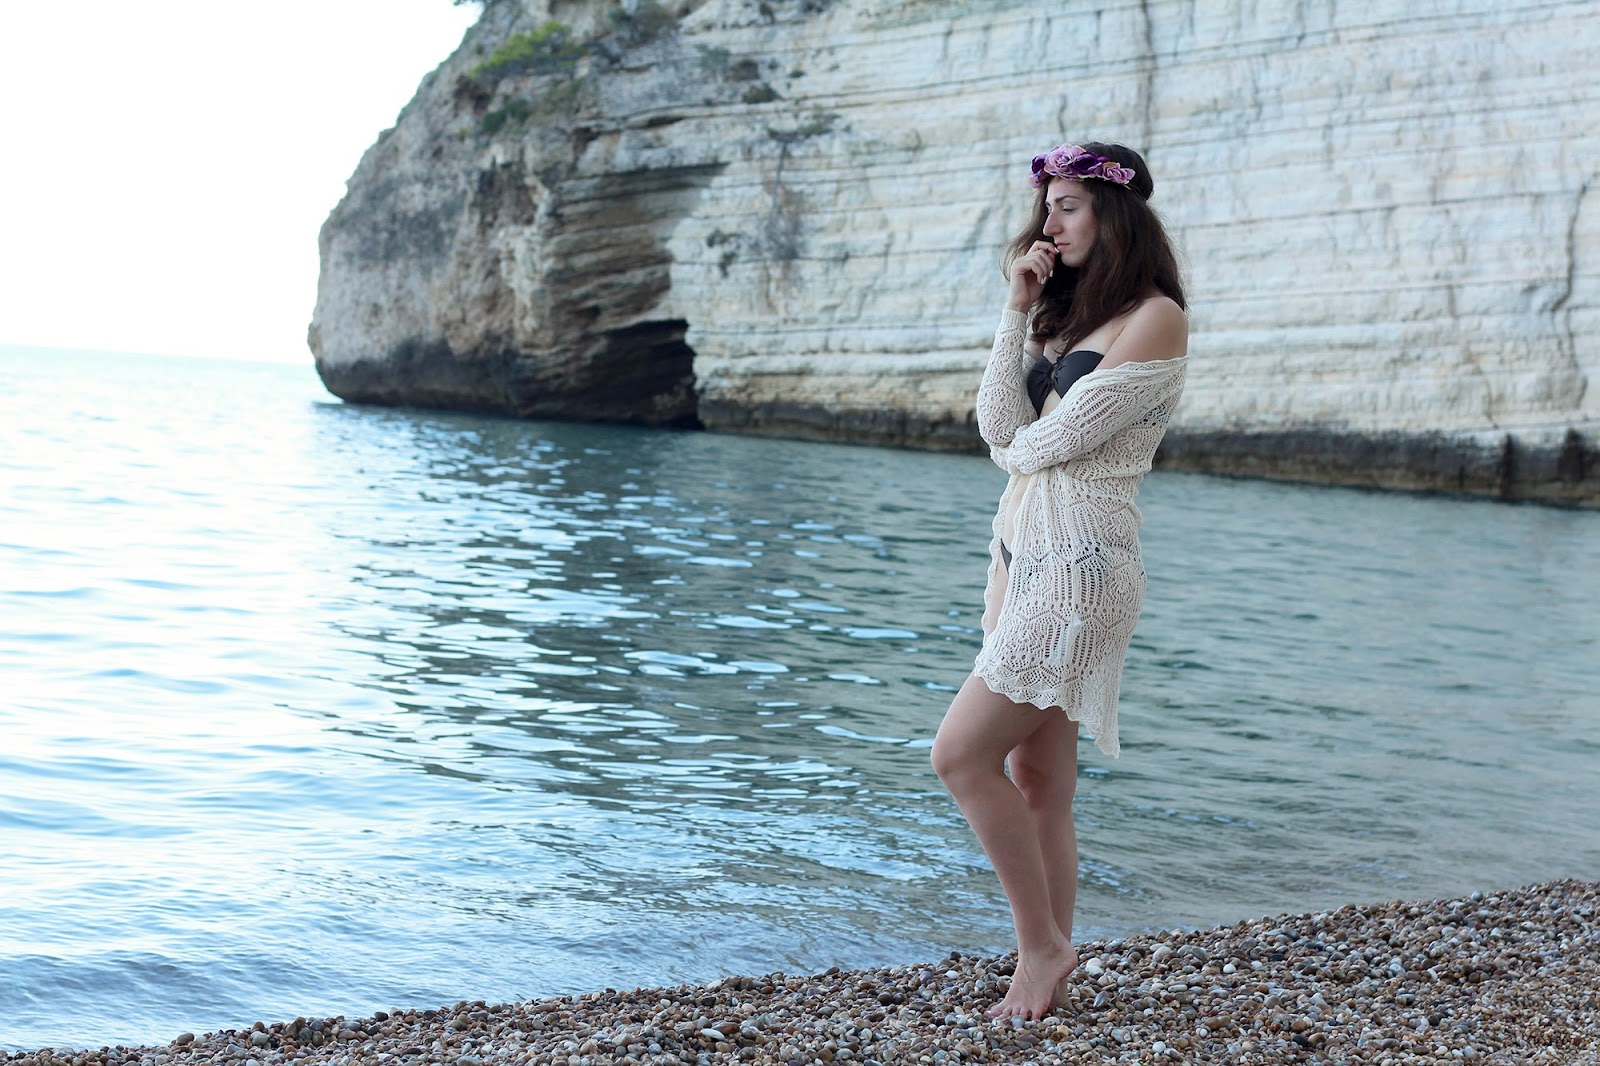 fashion style blogger outfit ootd italian girl italy trend vogue glamour puglia gargano summer vignanotica vieste swimsuit hm bijou brigitte floral crown bershka lace cardigan sea